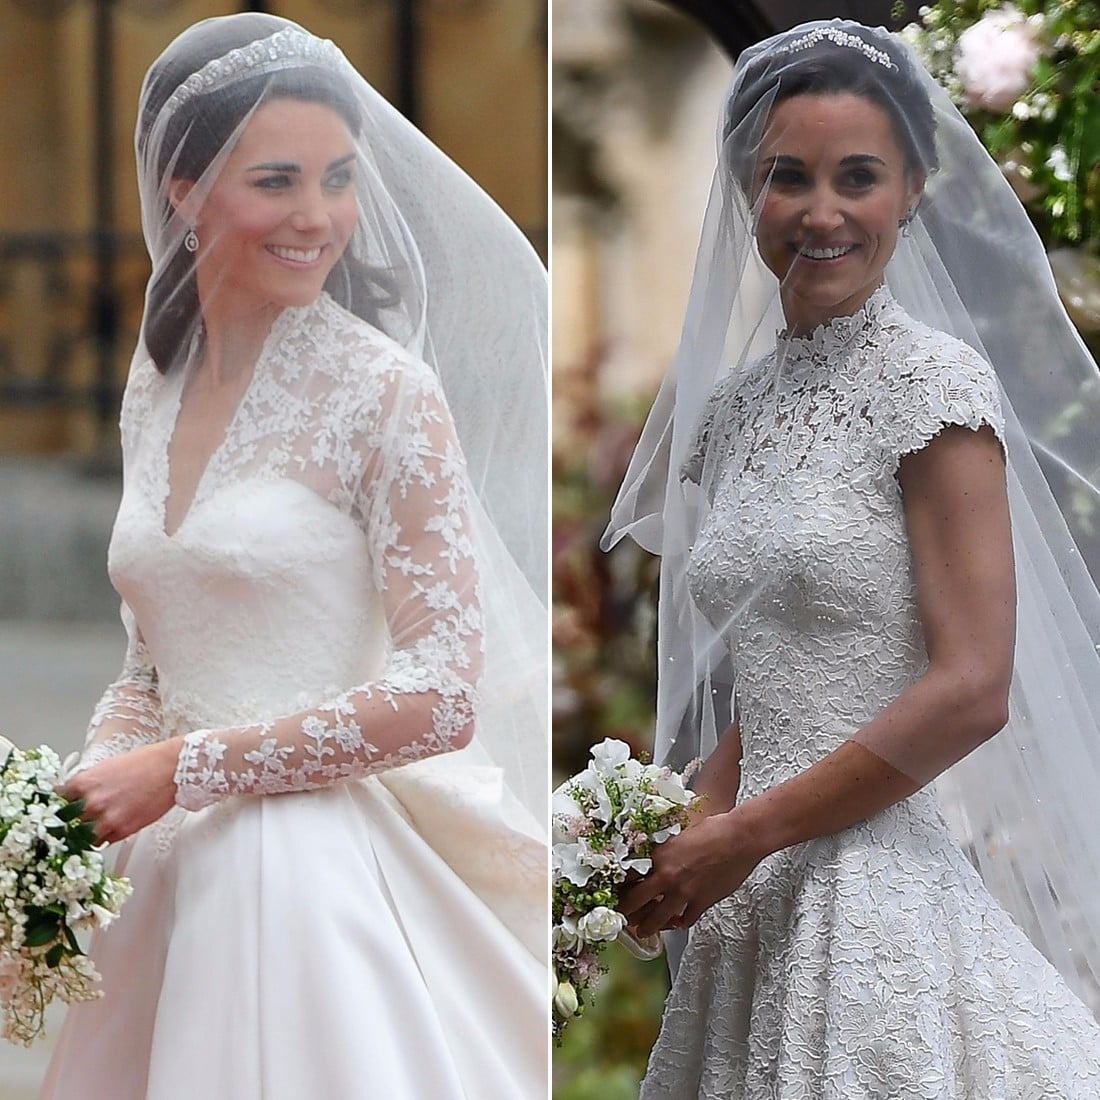 Kate Middleton and Pippa Middleton Wedding Pictures | POPSUGAR Celebrity